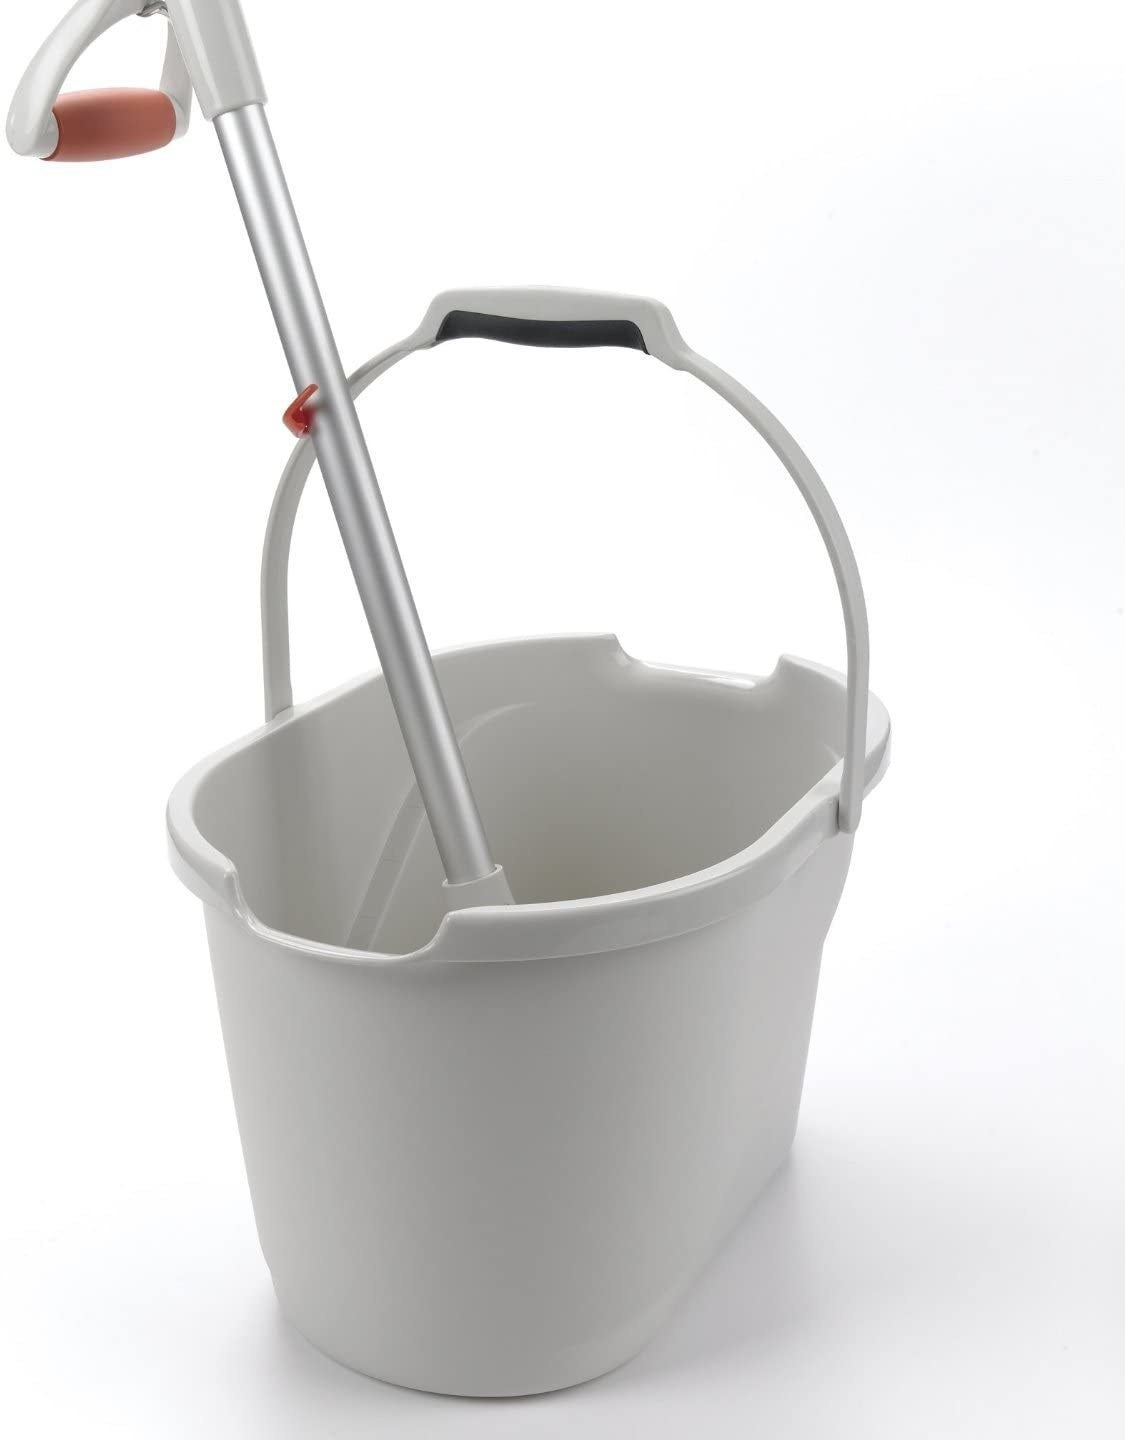 A white plastic bucker with handled extended while holding up a mop